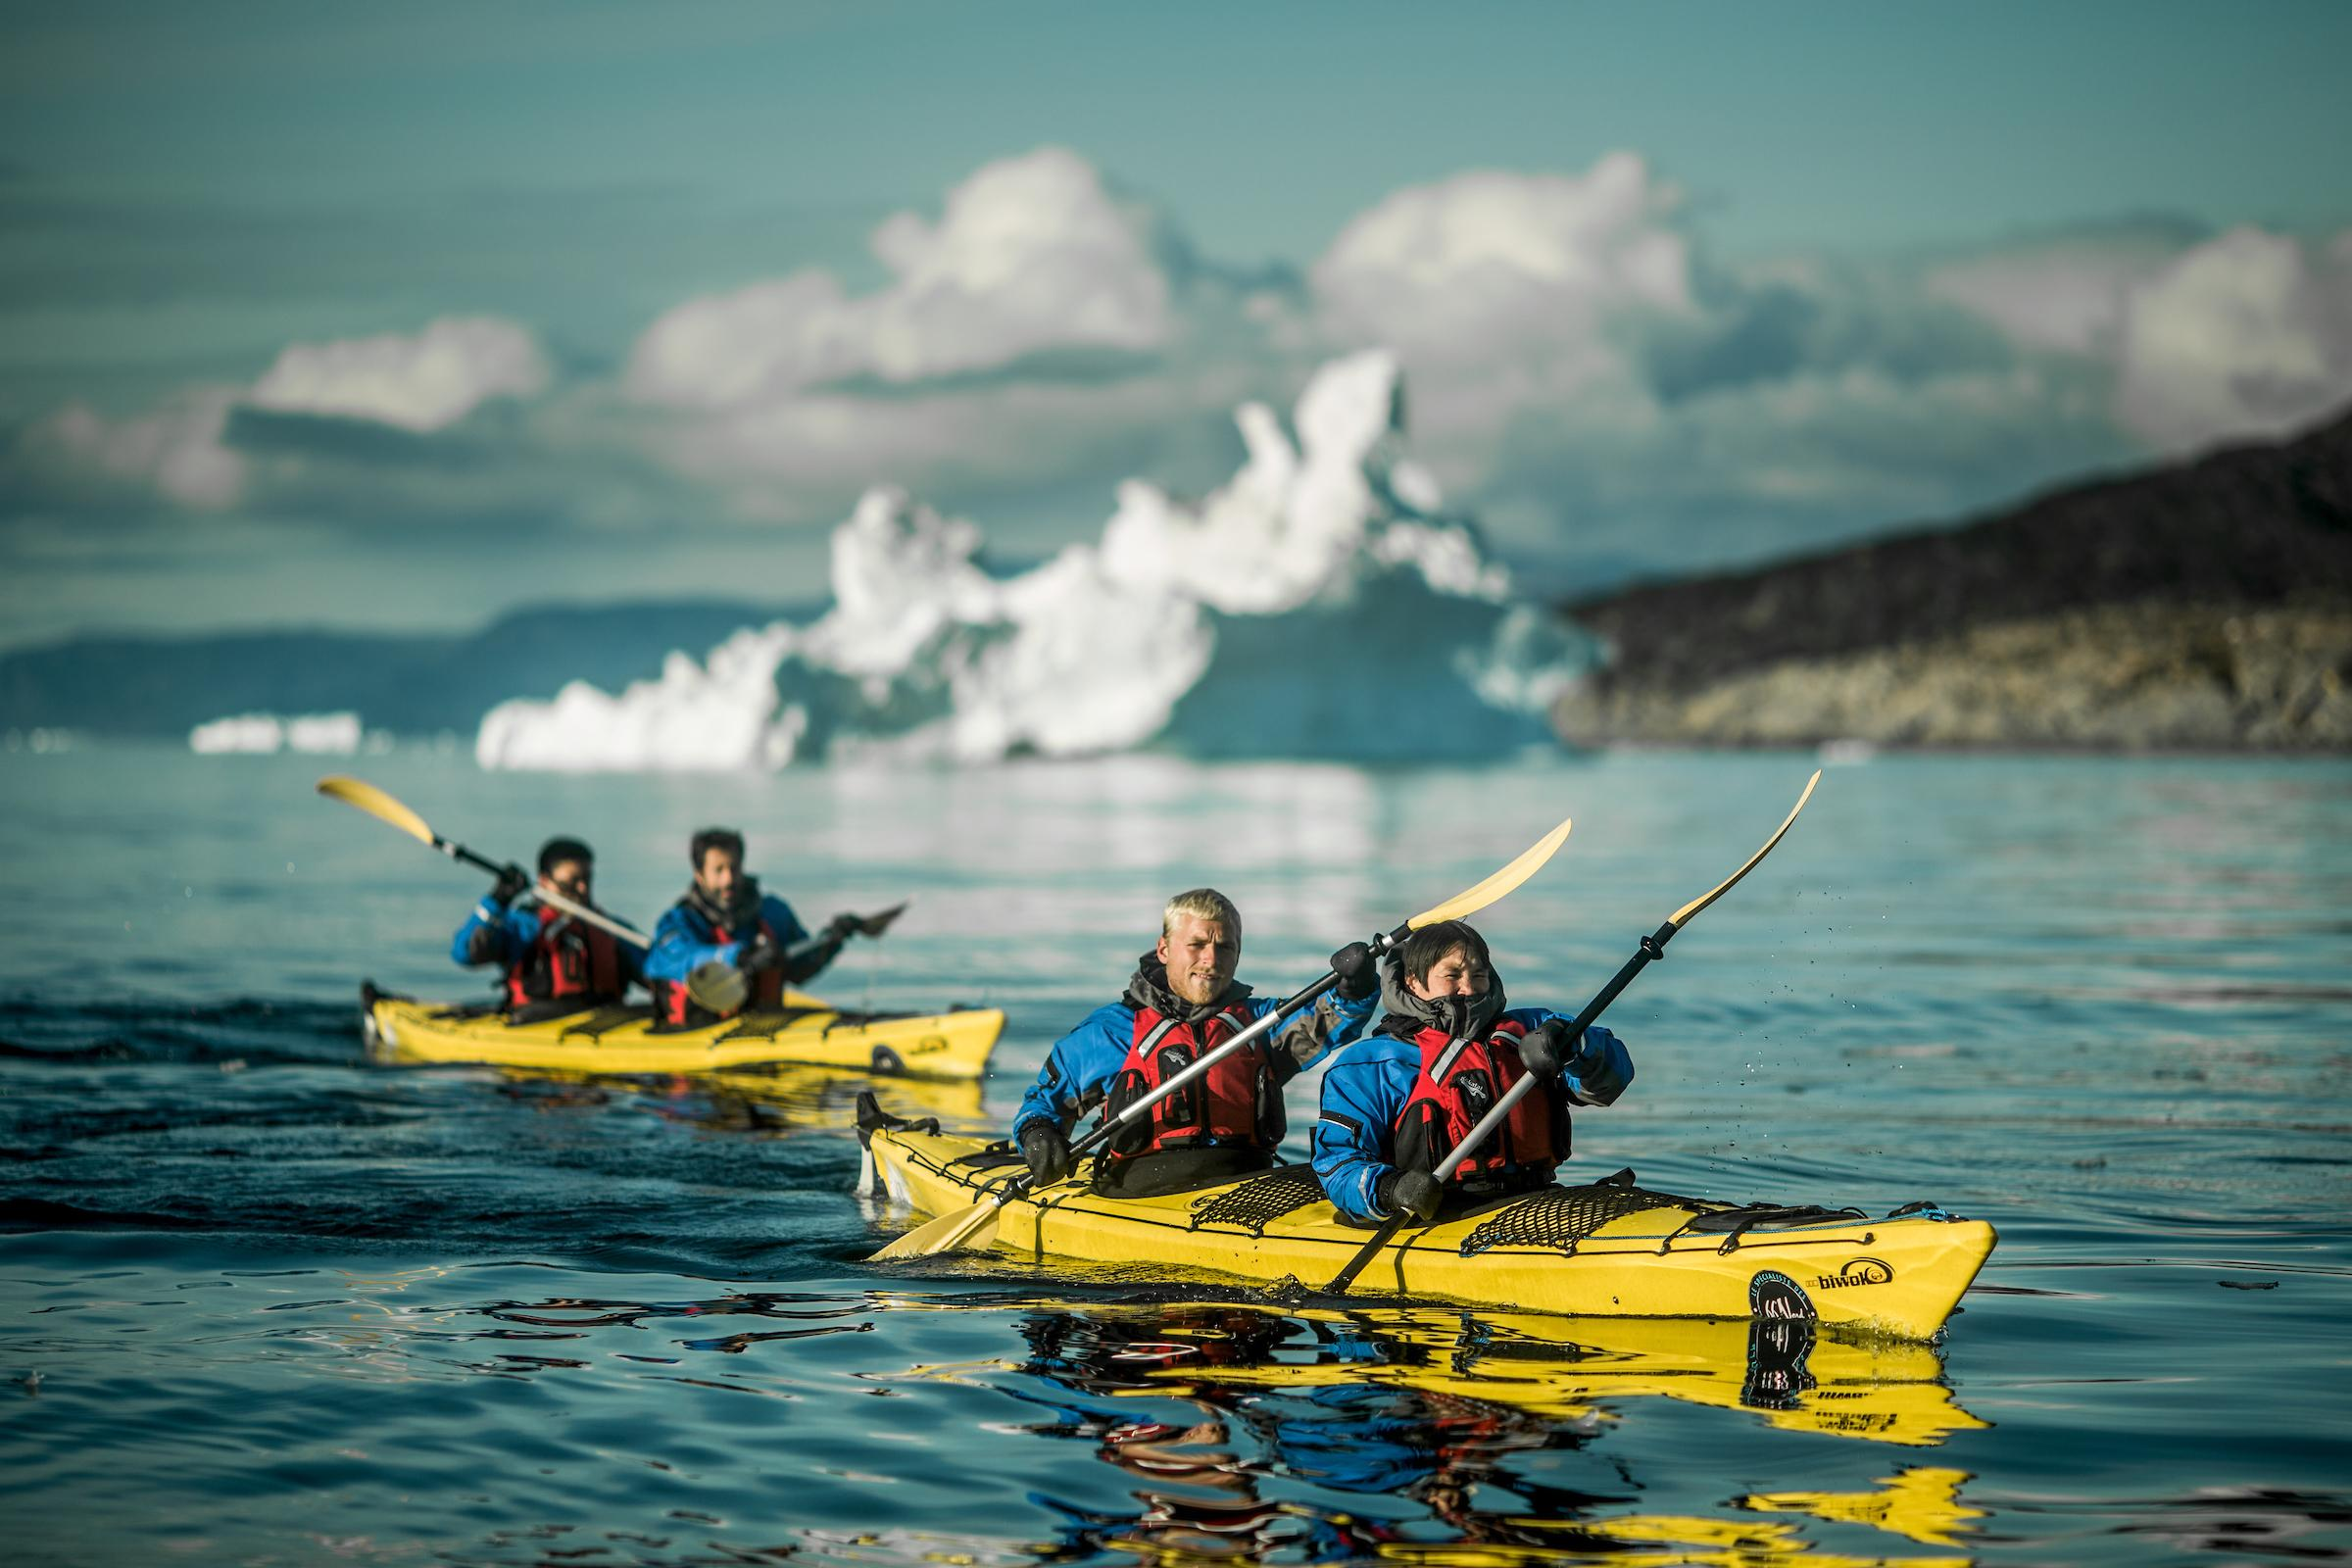 Kayaking in the Disko Bay with PGI Greenland near Oqaatsut. Photo by Mads Pihl - Visit Greenland